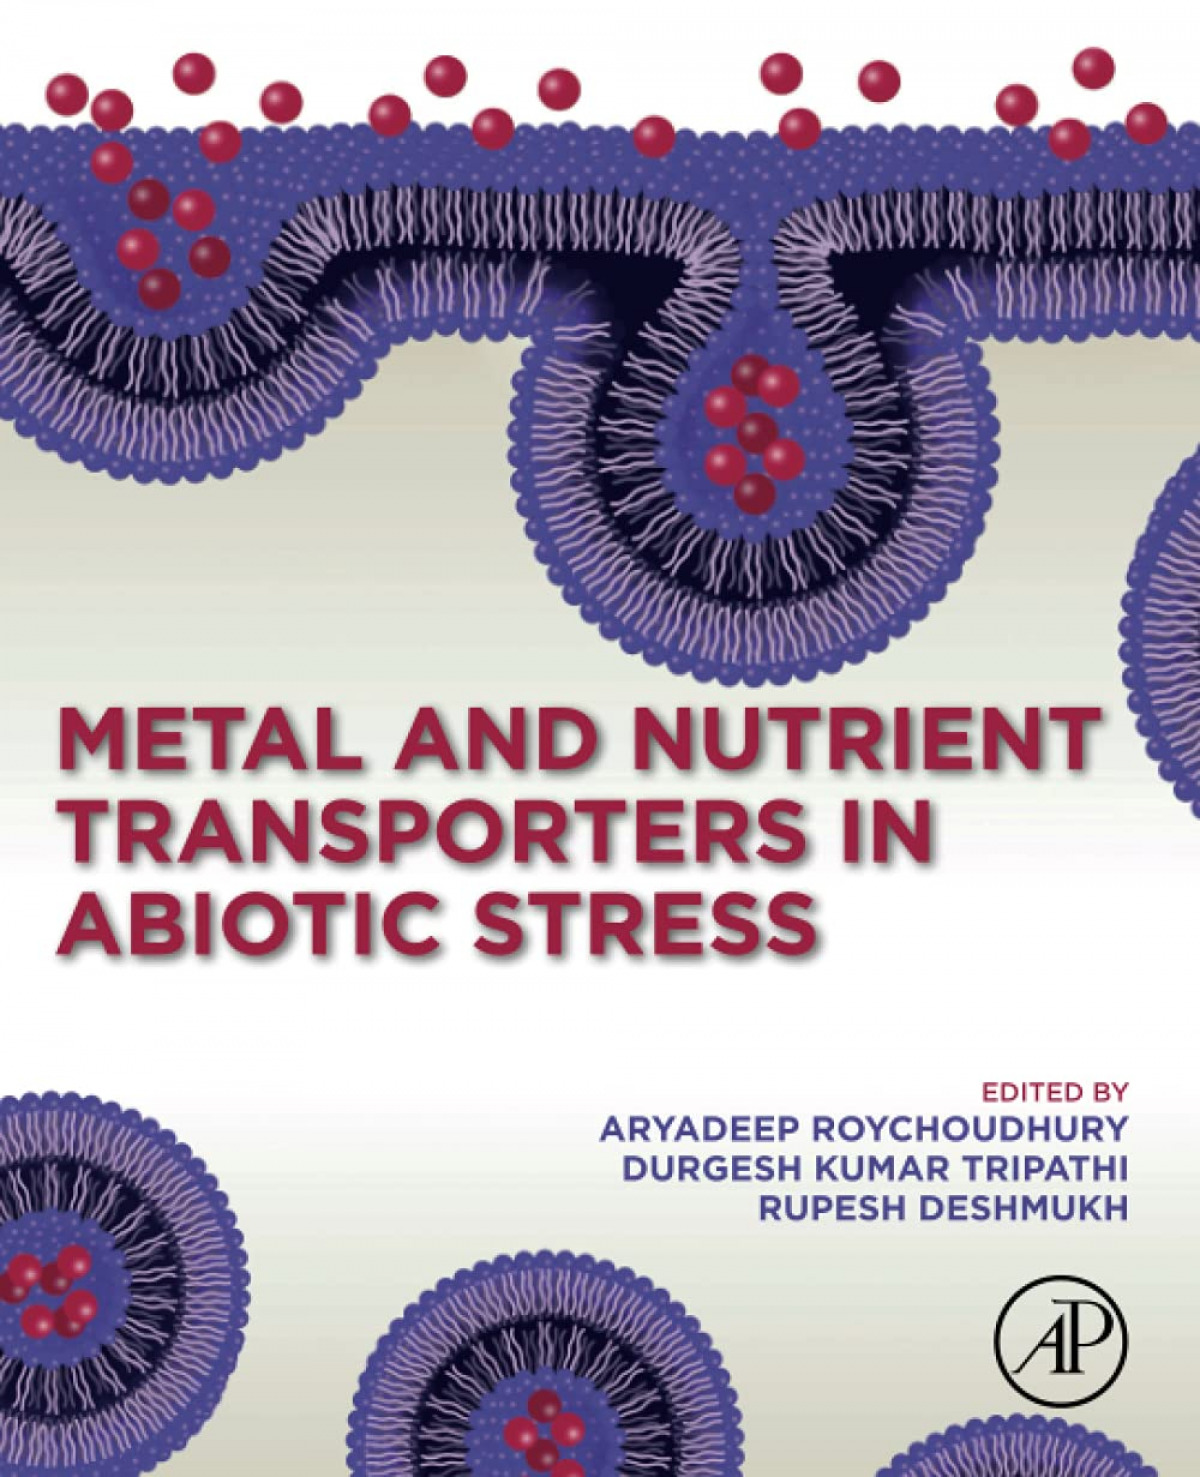 Metal and nutrient transporters abiotic stress